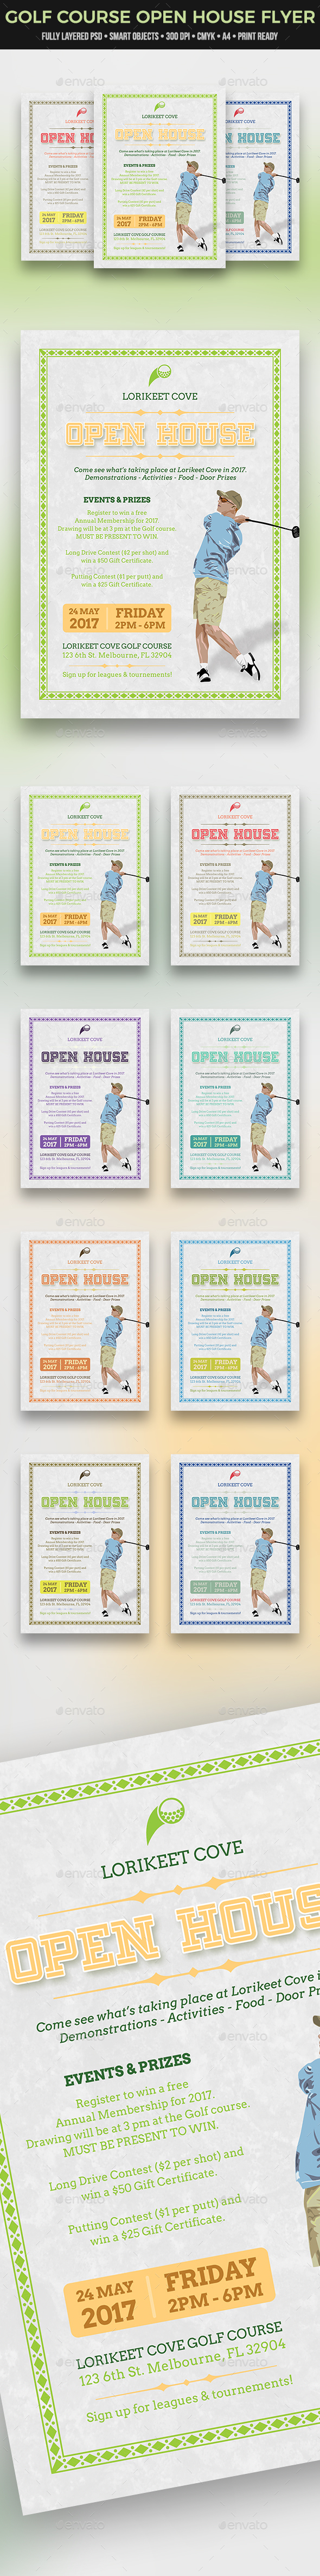 Golf Course Open House Flyer - Sports Events